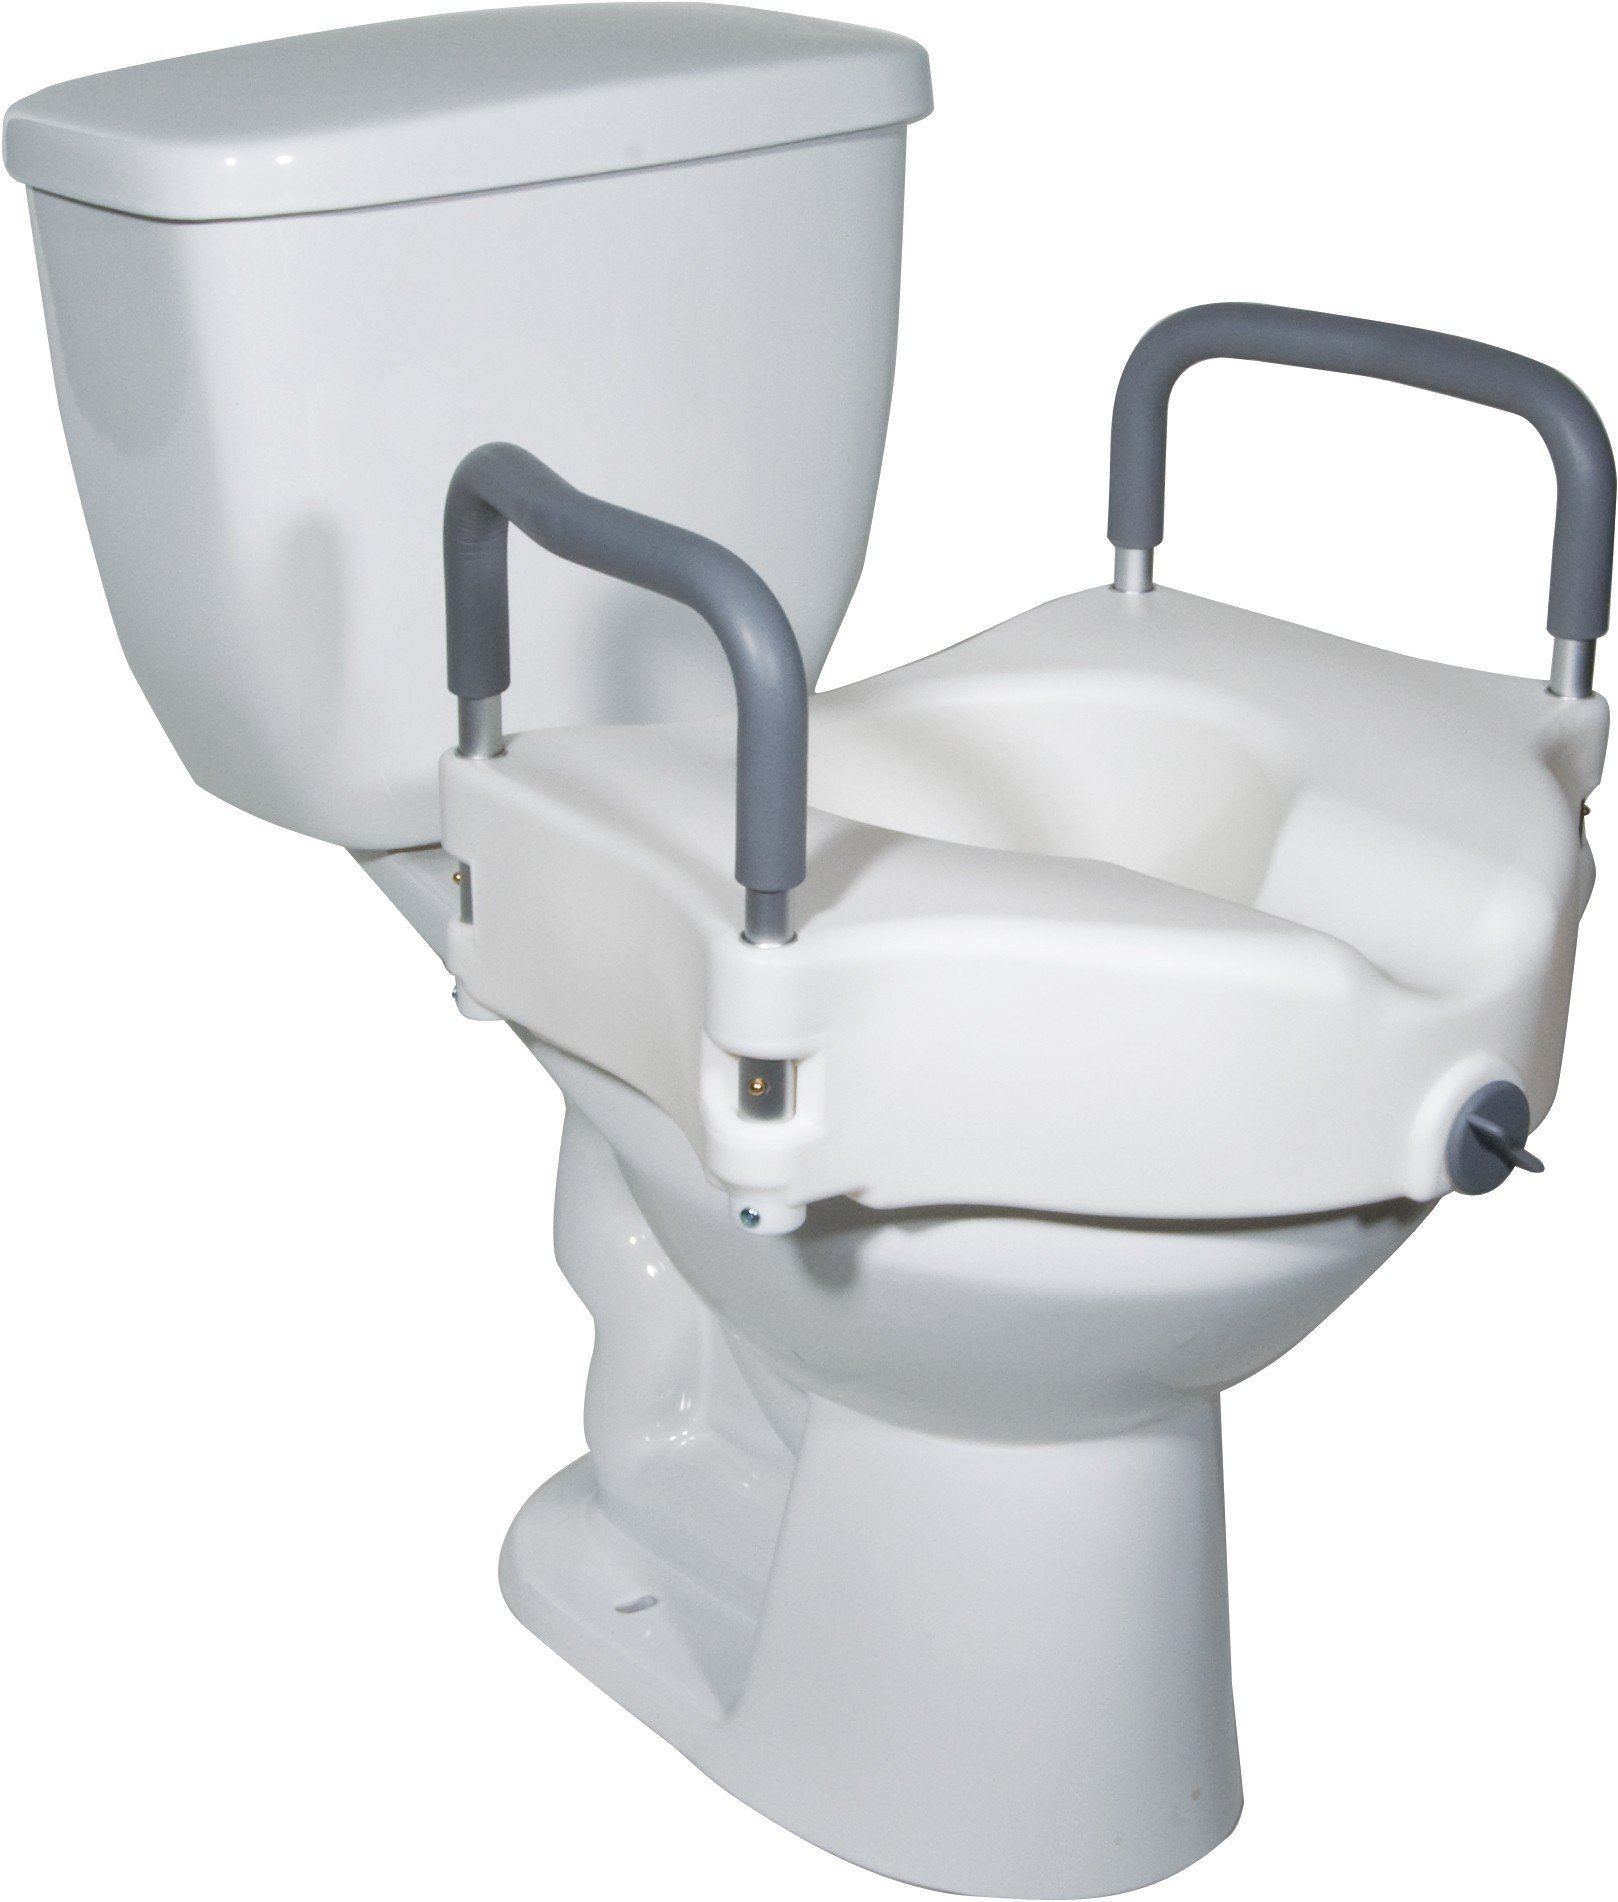 2 in 1 Locking Raised Toilet Seat with Tool free Removable Arms